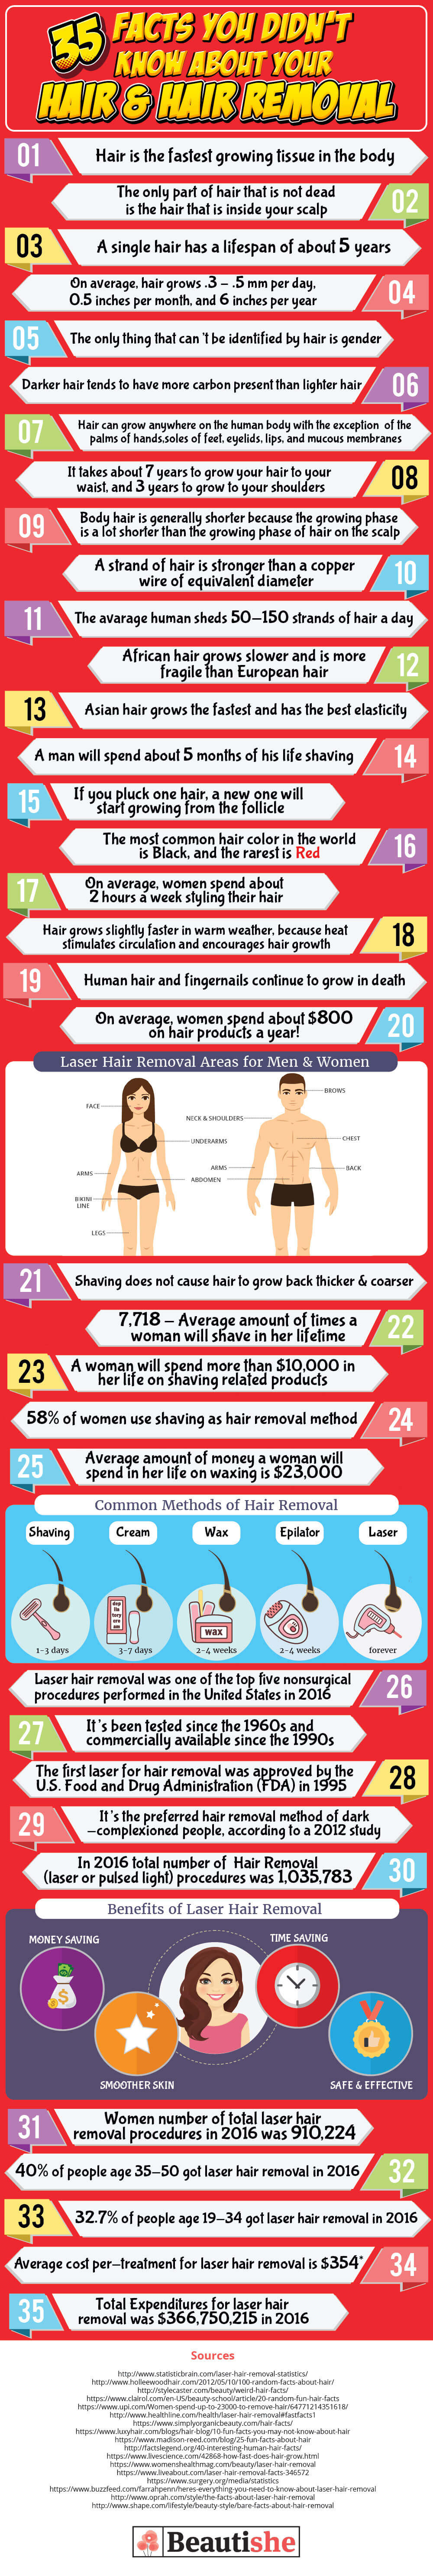 hair-removal-infographic-plaza